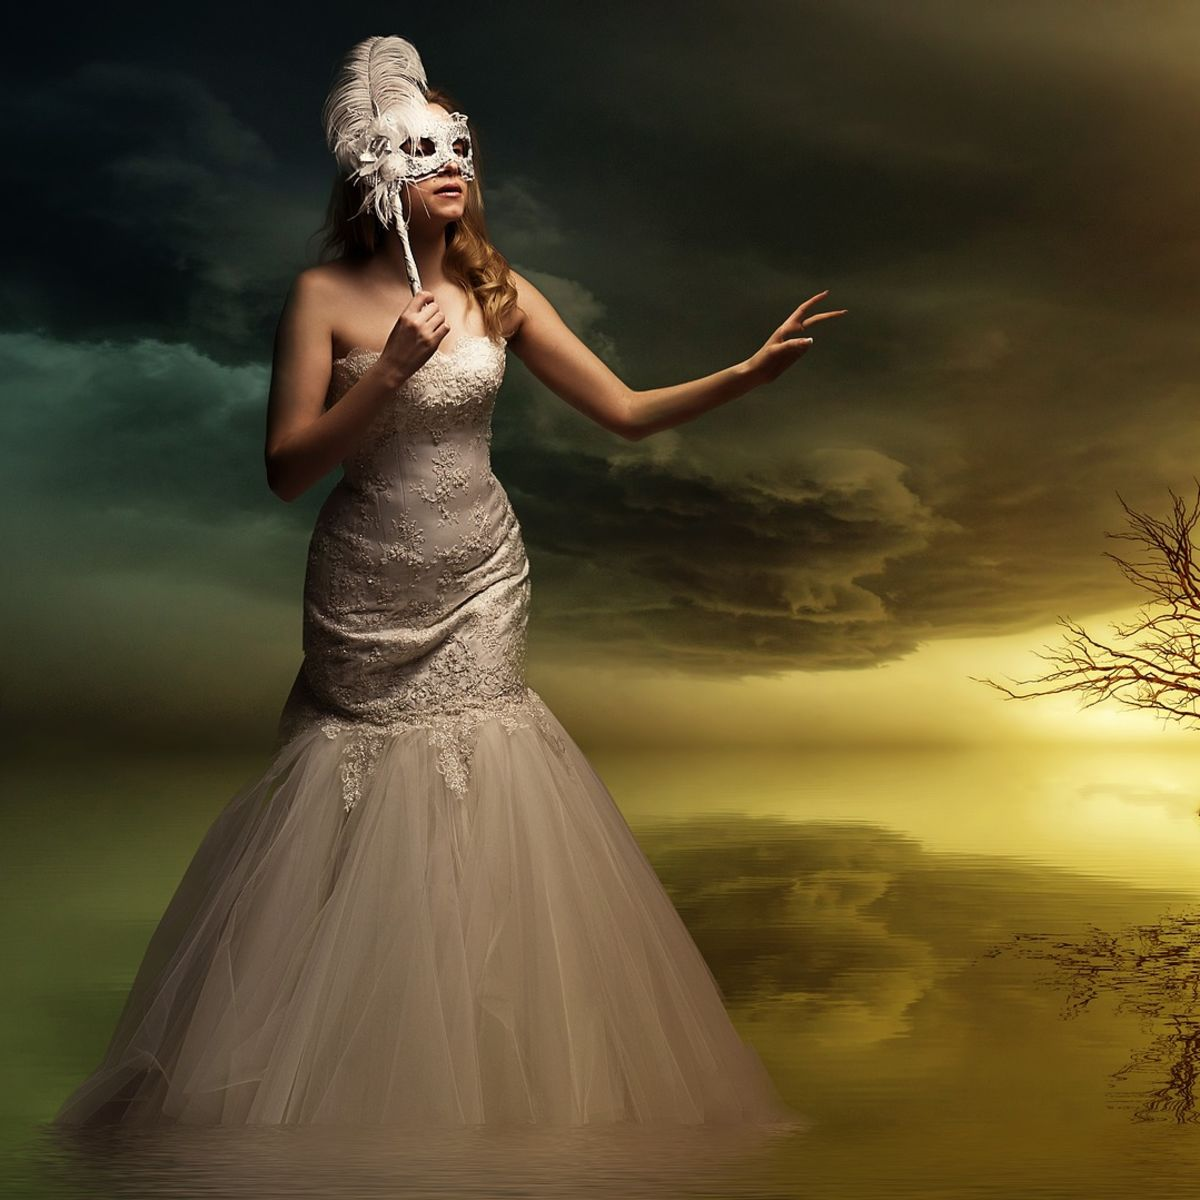 Gothic woman, fantasy, tree, mask